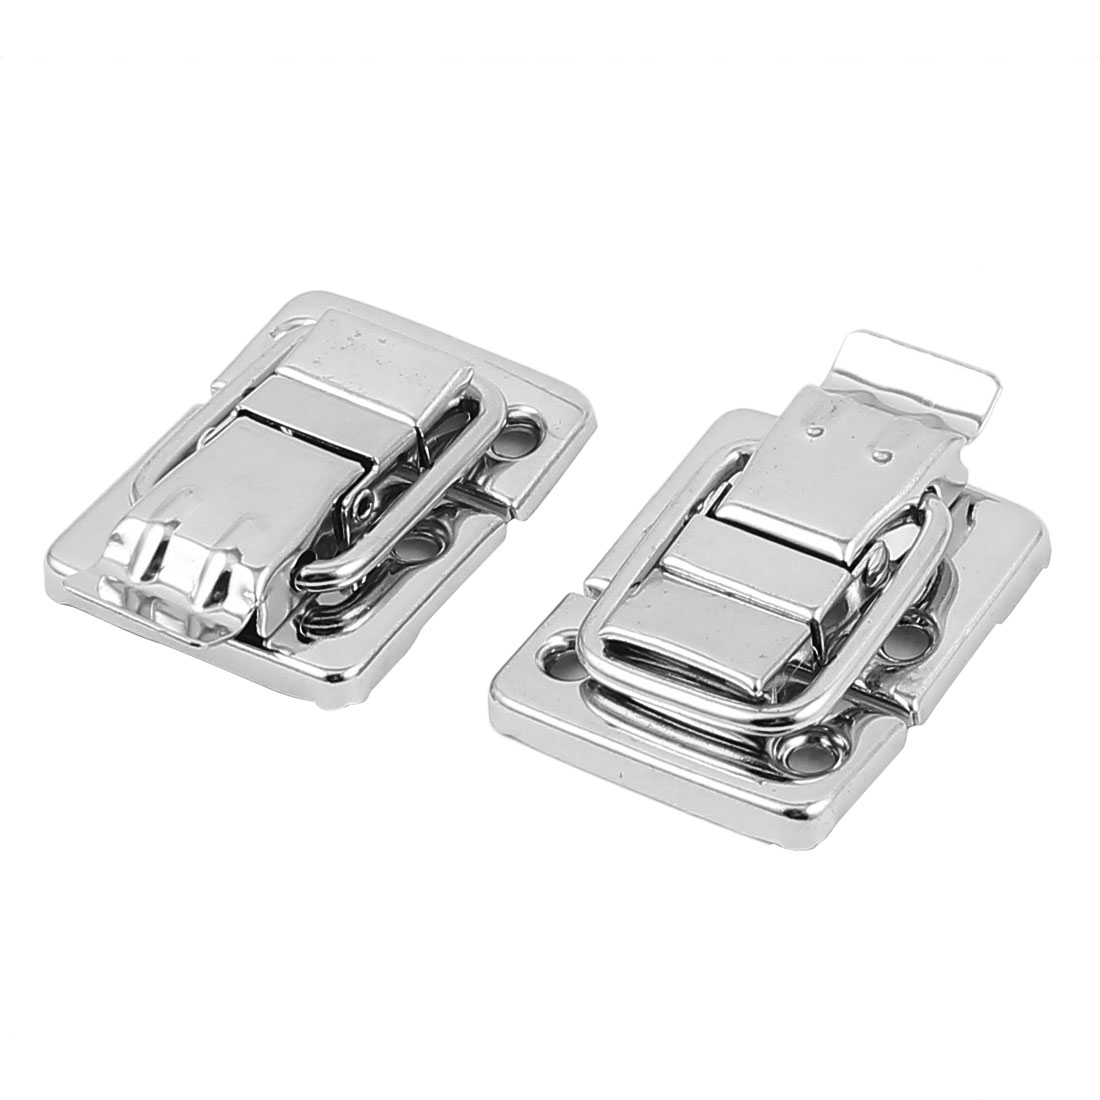 Metal Wardrobe Box Case Latch Hasp Silver Tone 3cm x 3.6cm x 1cm 2Pcs